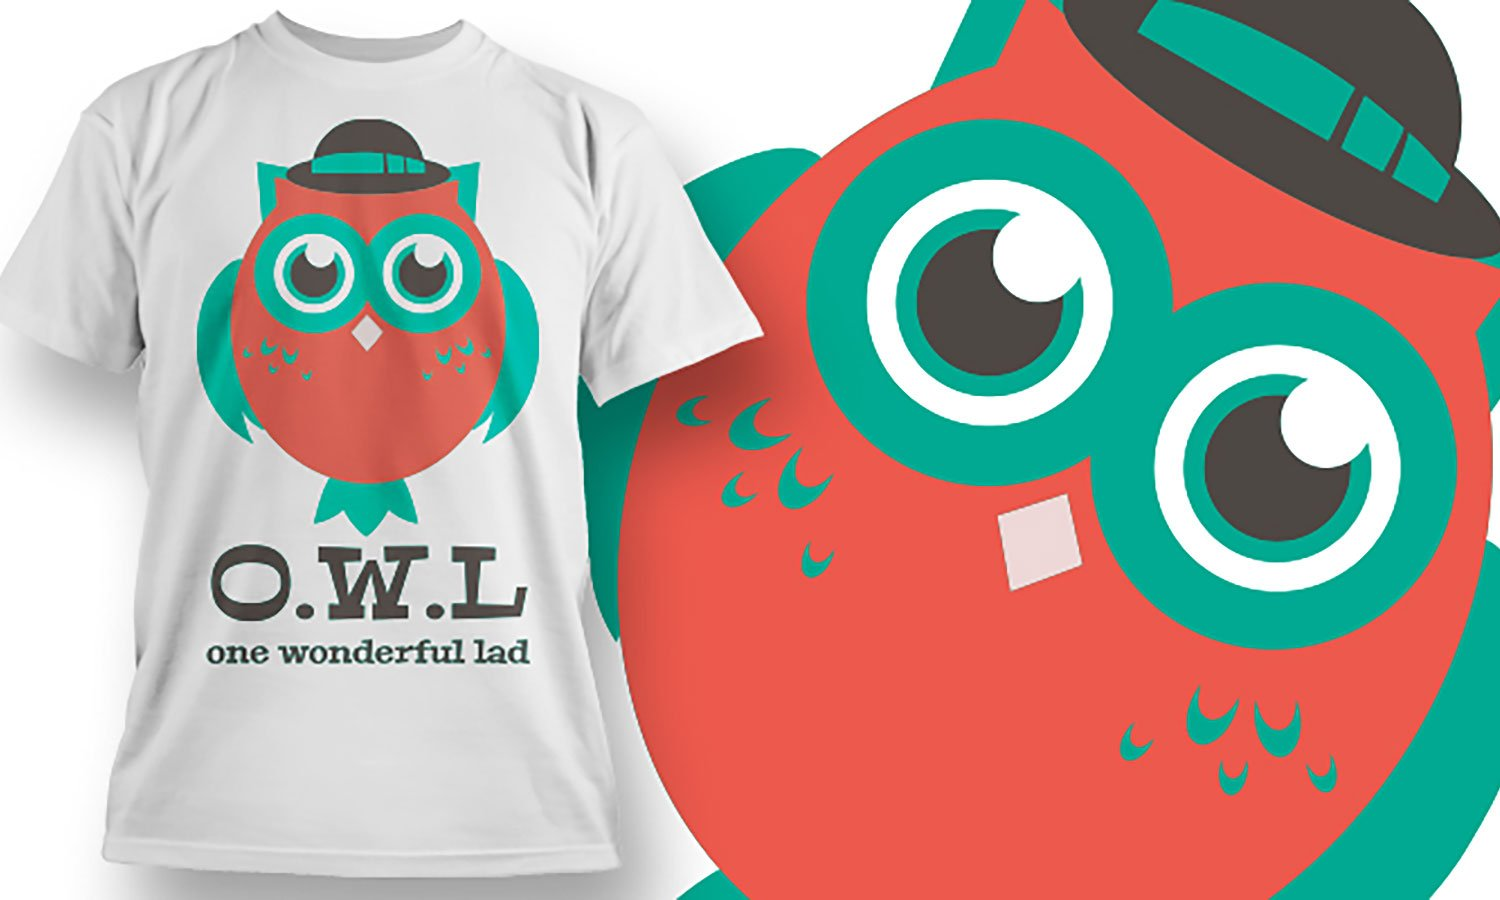 Owl - Printed T-Shirt for Men, Women and Kids - TS405